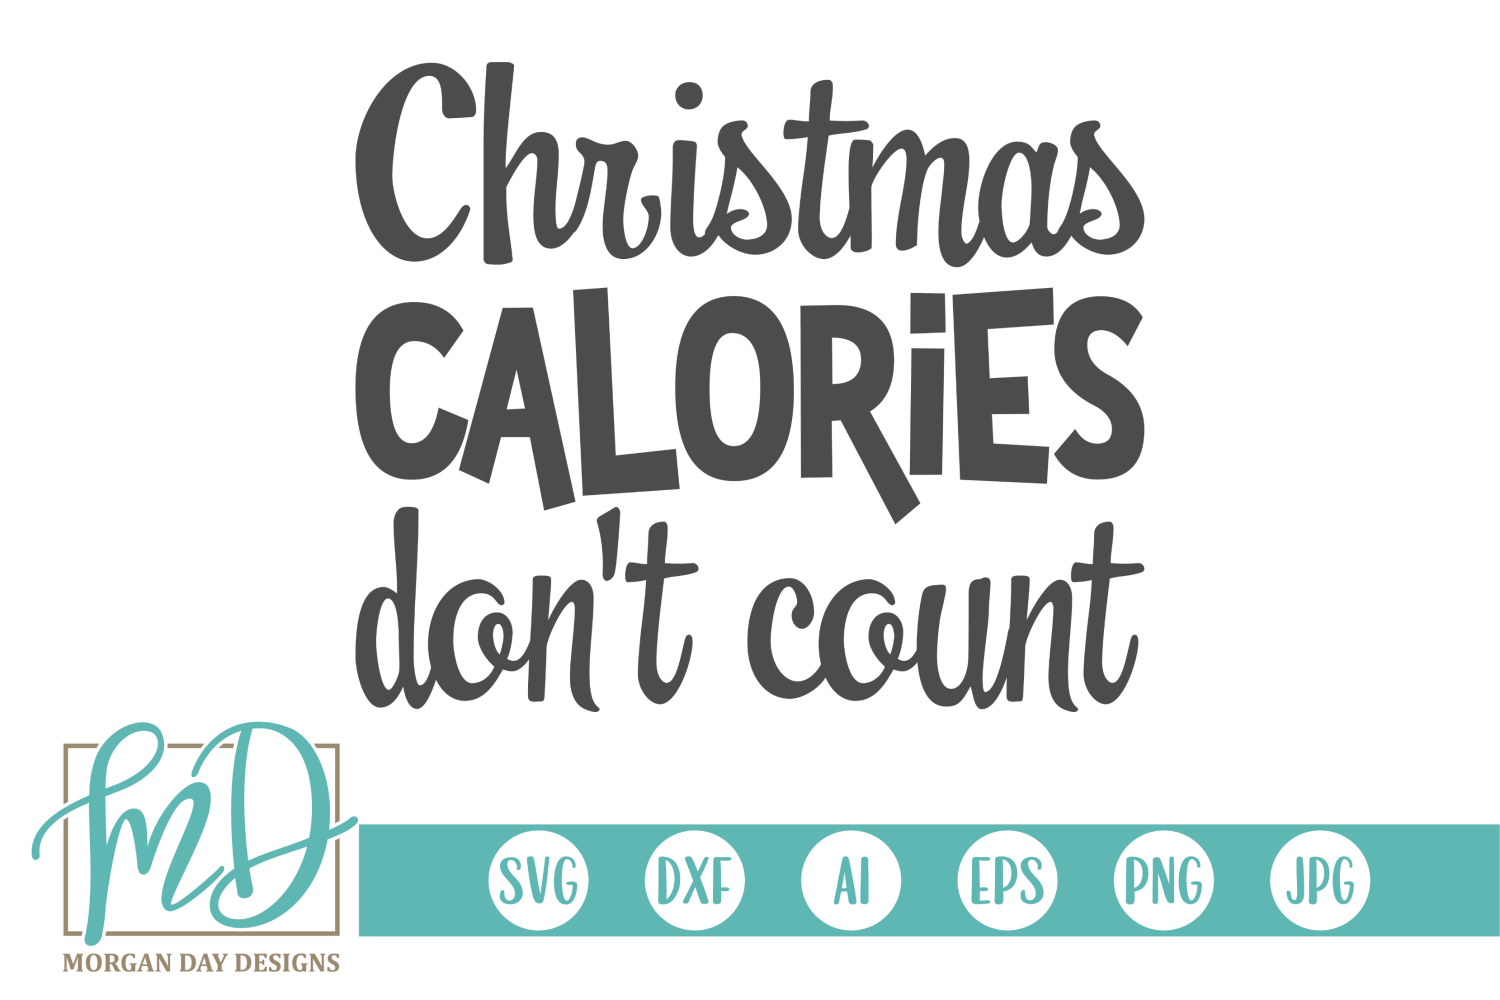 Download Free Christmas Calories Don T Count Graphic By Morgan Day Designs for Cricut Explore, Silhouette and other cutting machines.